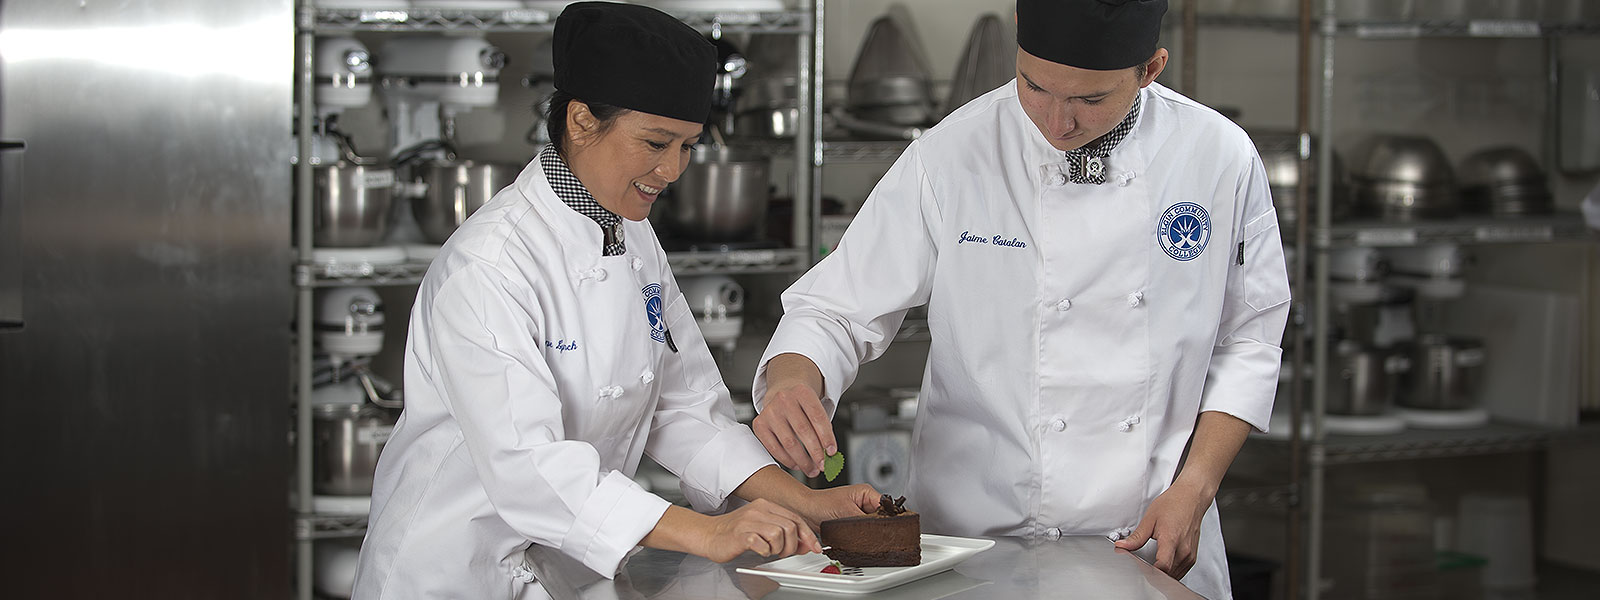 Close-up of pastry chefs preparing a dessert.